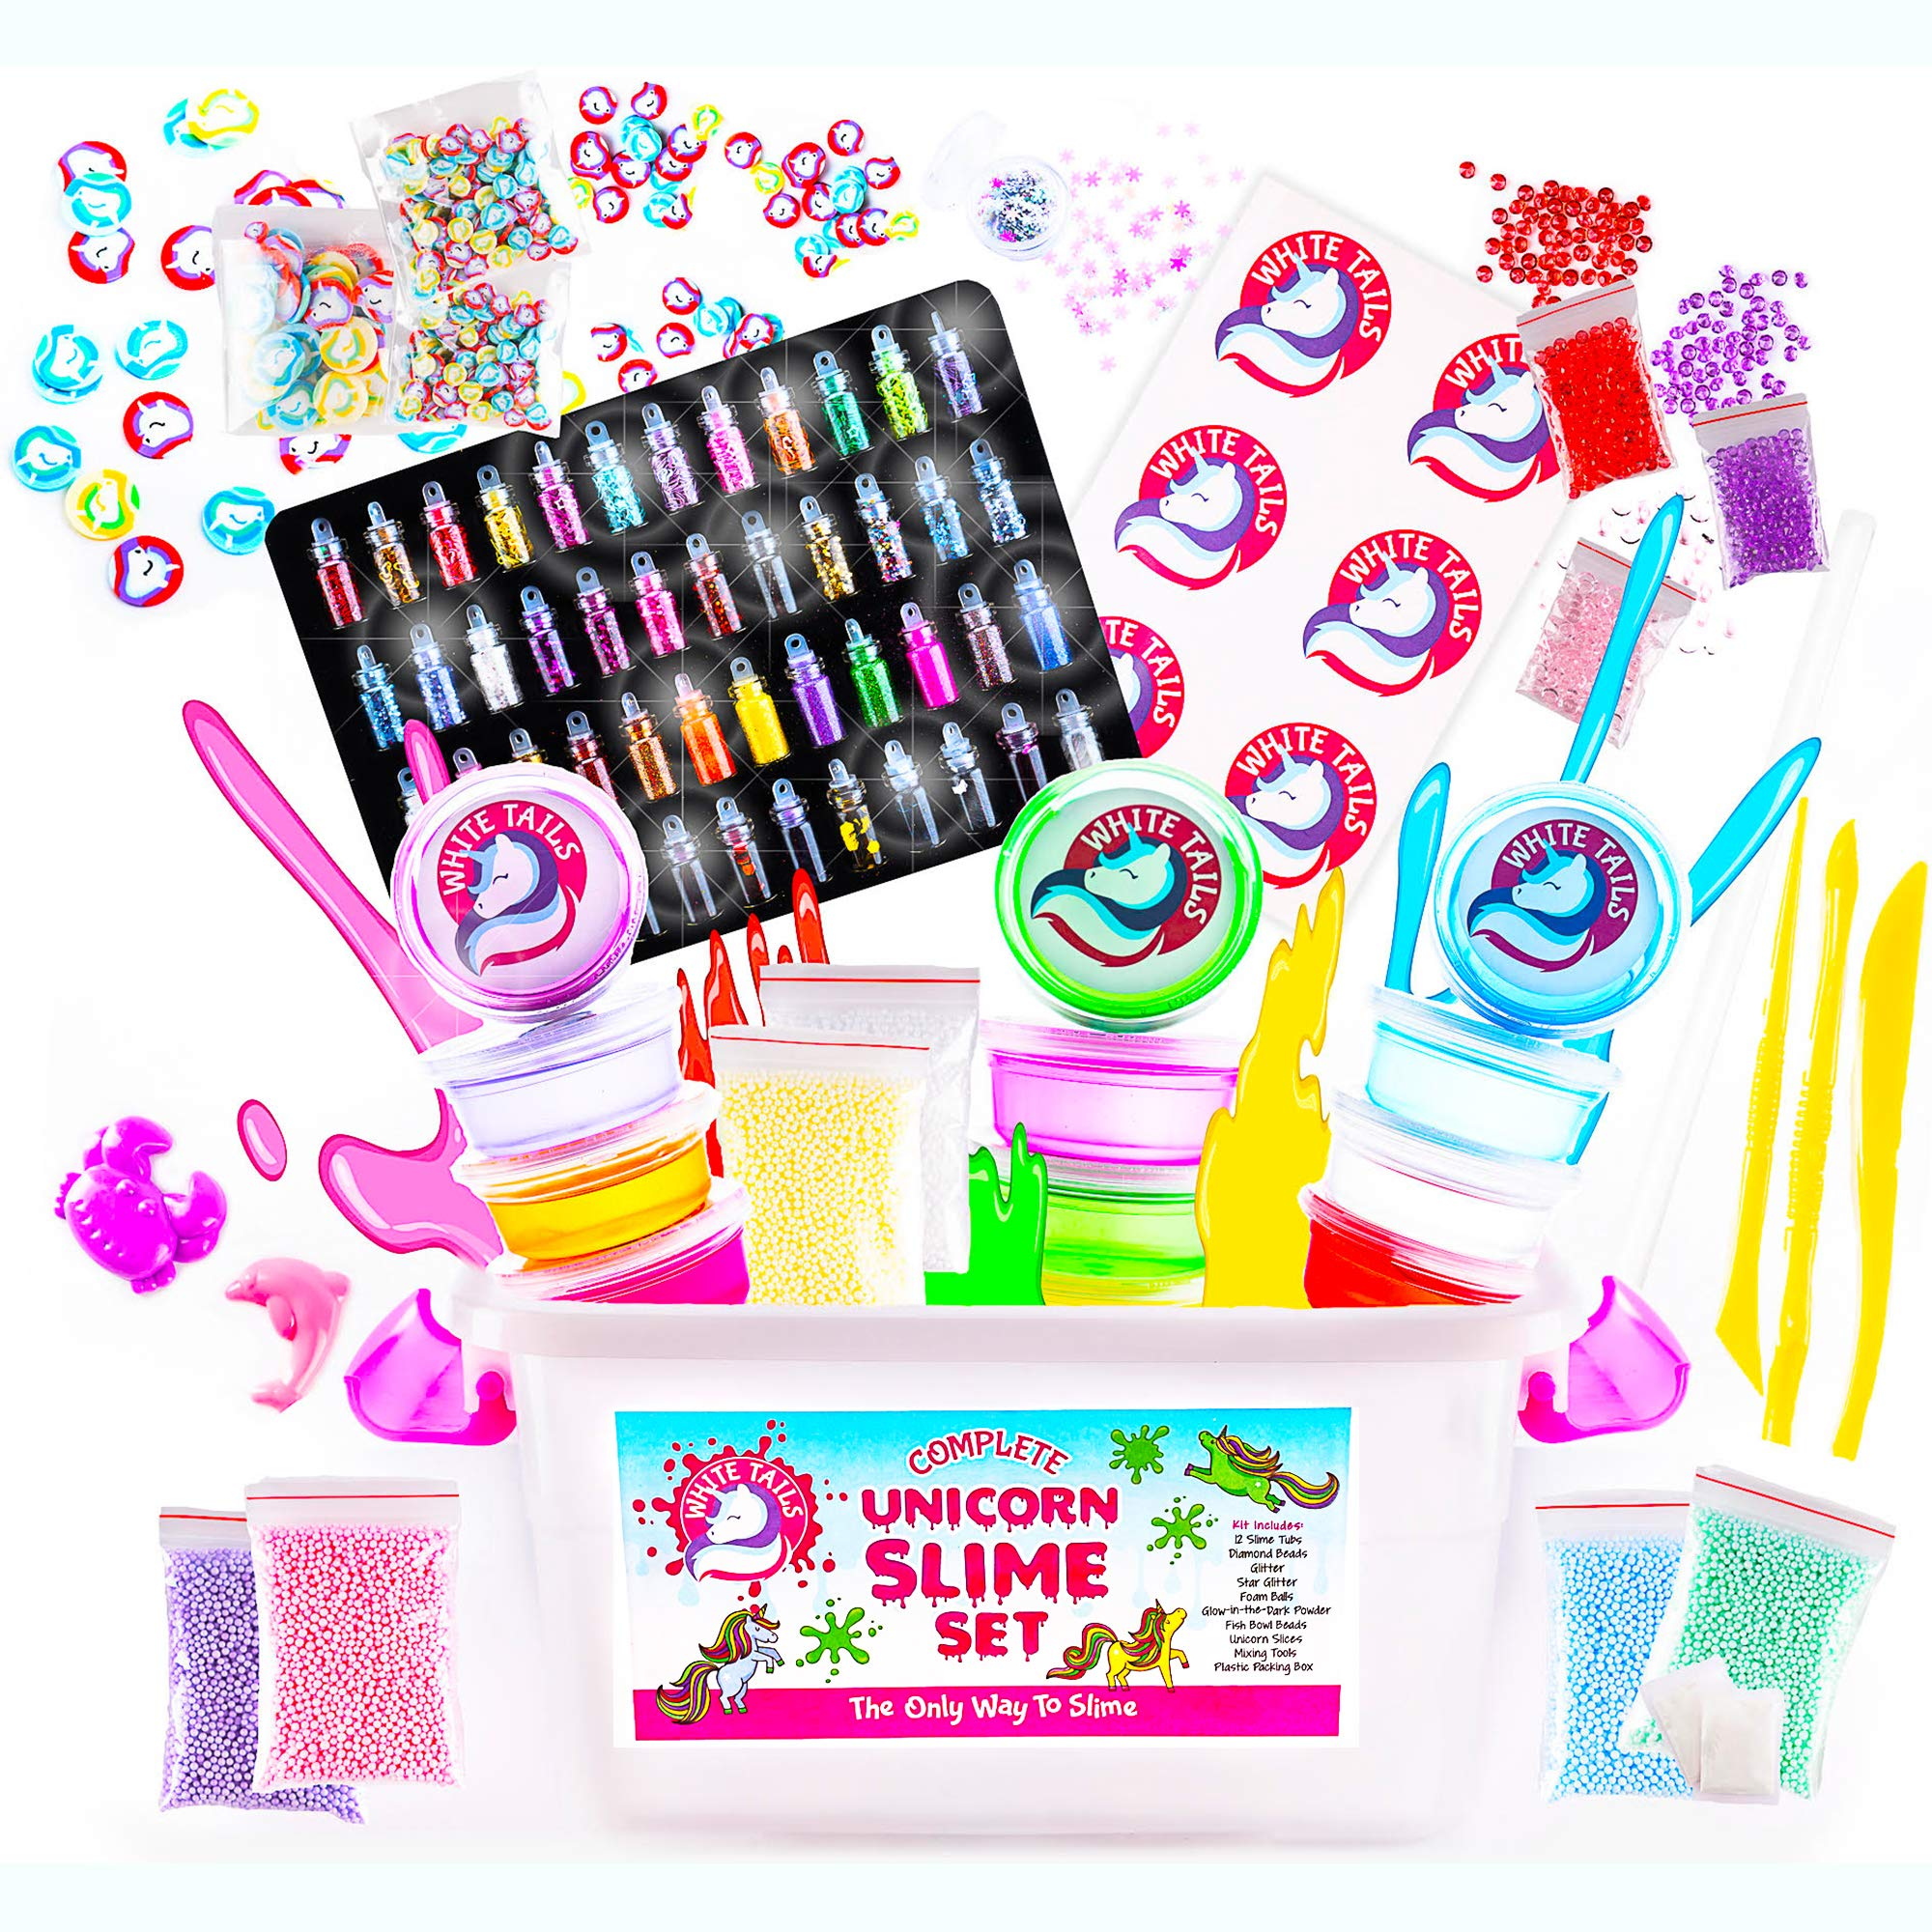 White Tails Unicorn Slime Kit for Girls and Boys 12 Containers of Clear Slime for Kids by White Tails (Image #1)